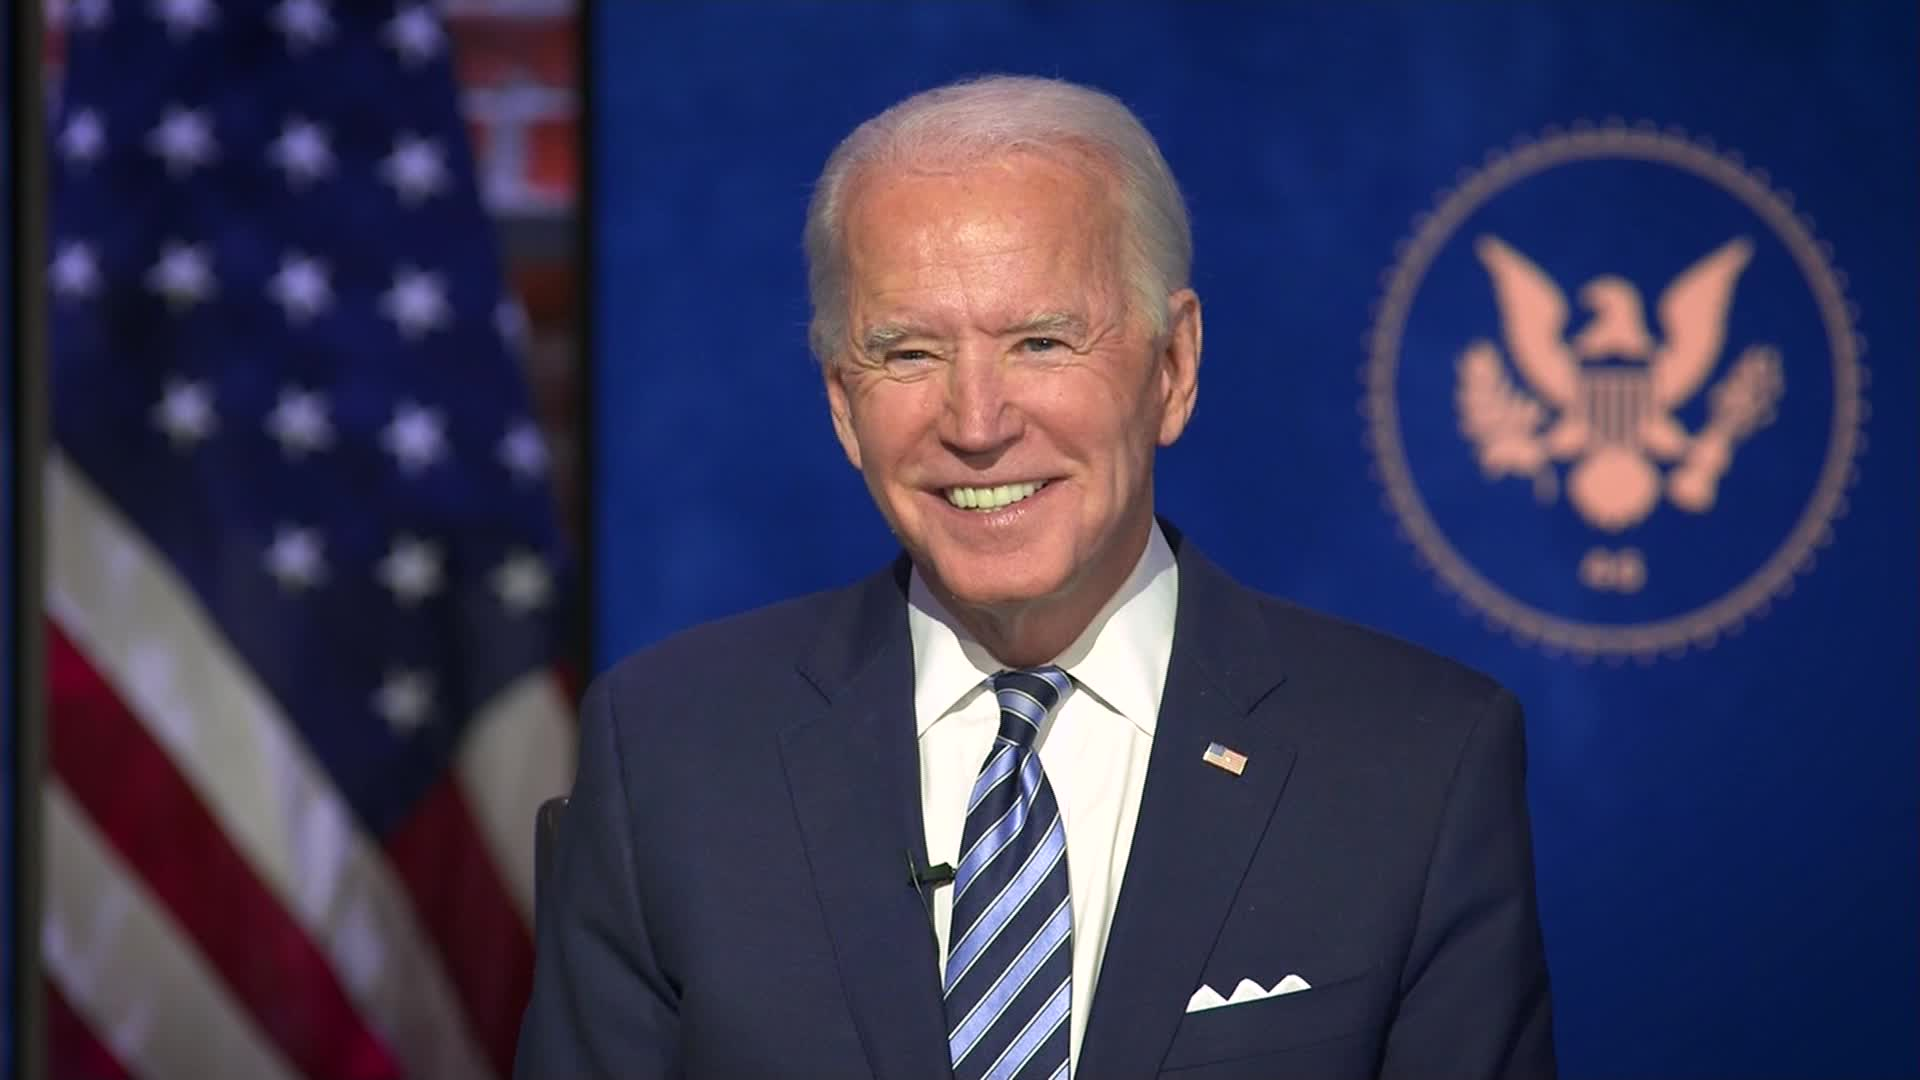 Pompeo willing to meet with incoming Biden team, officials say